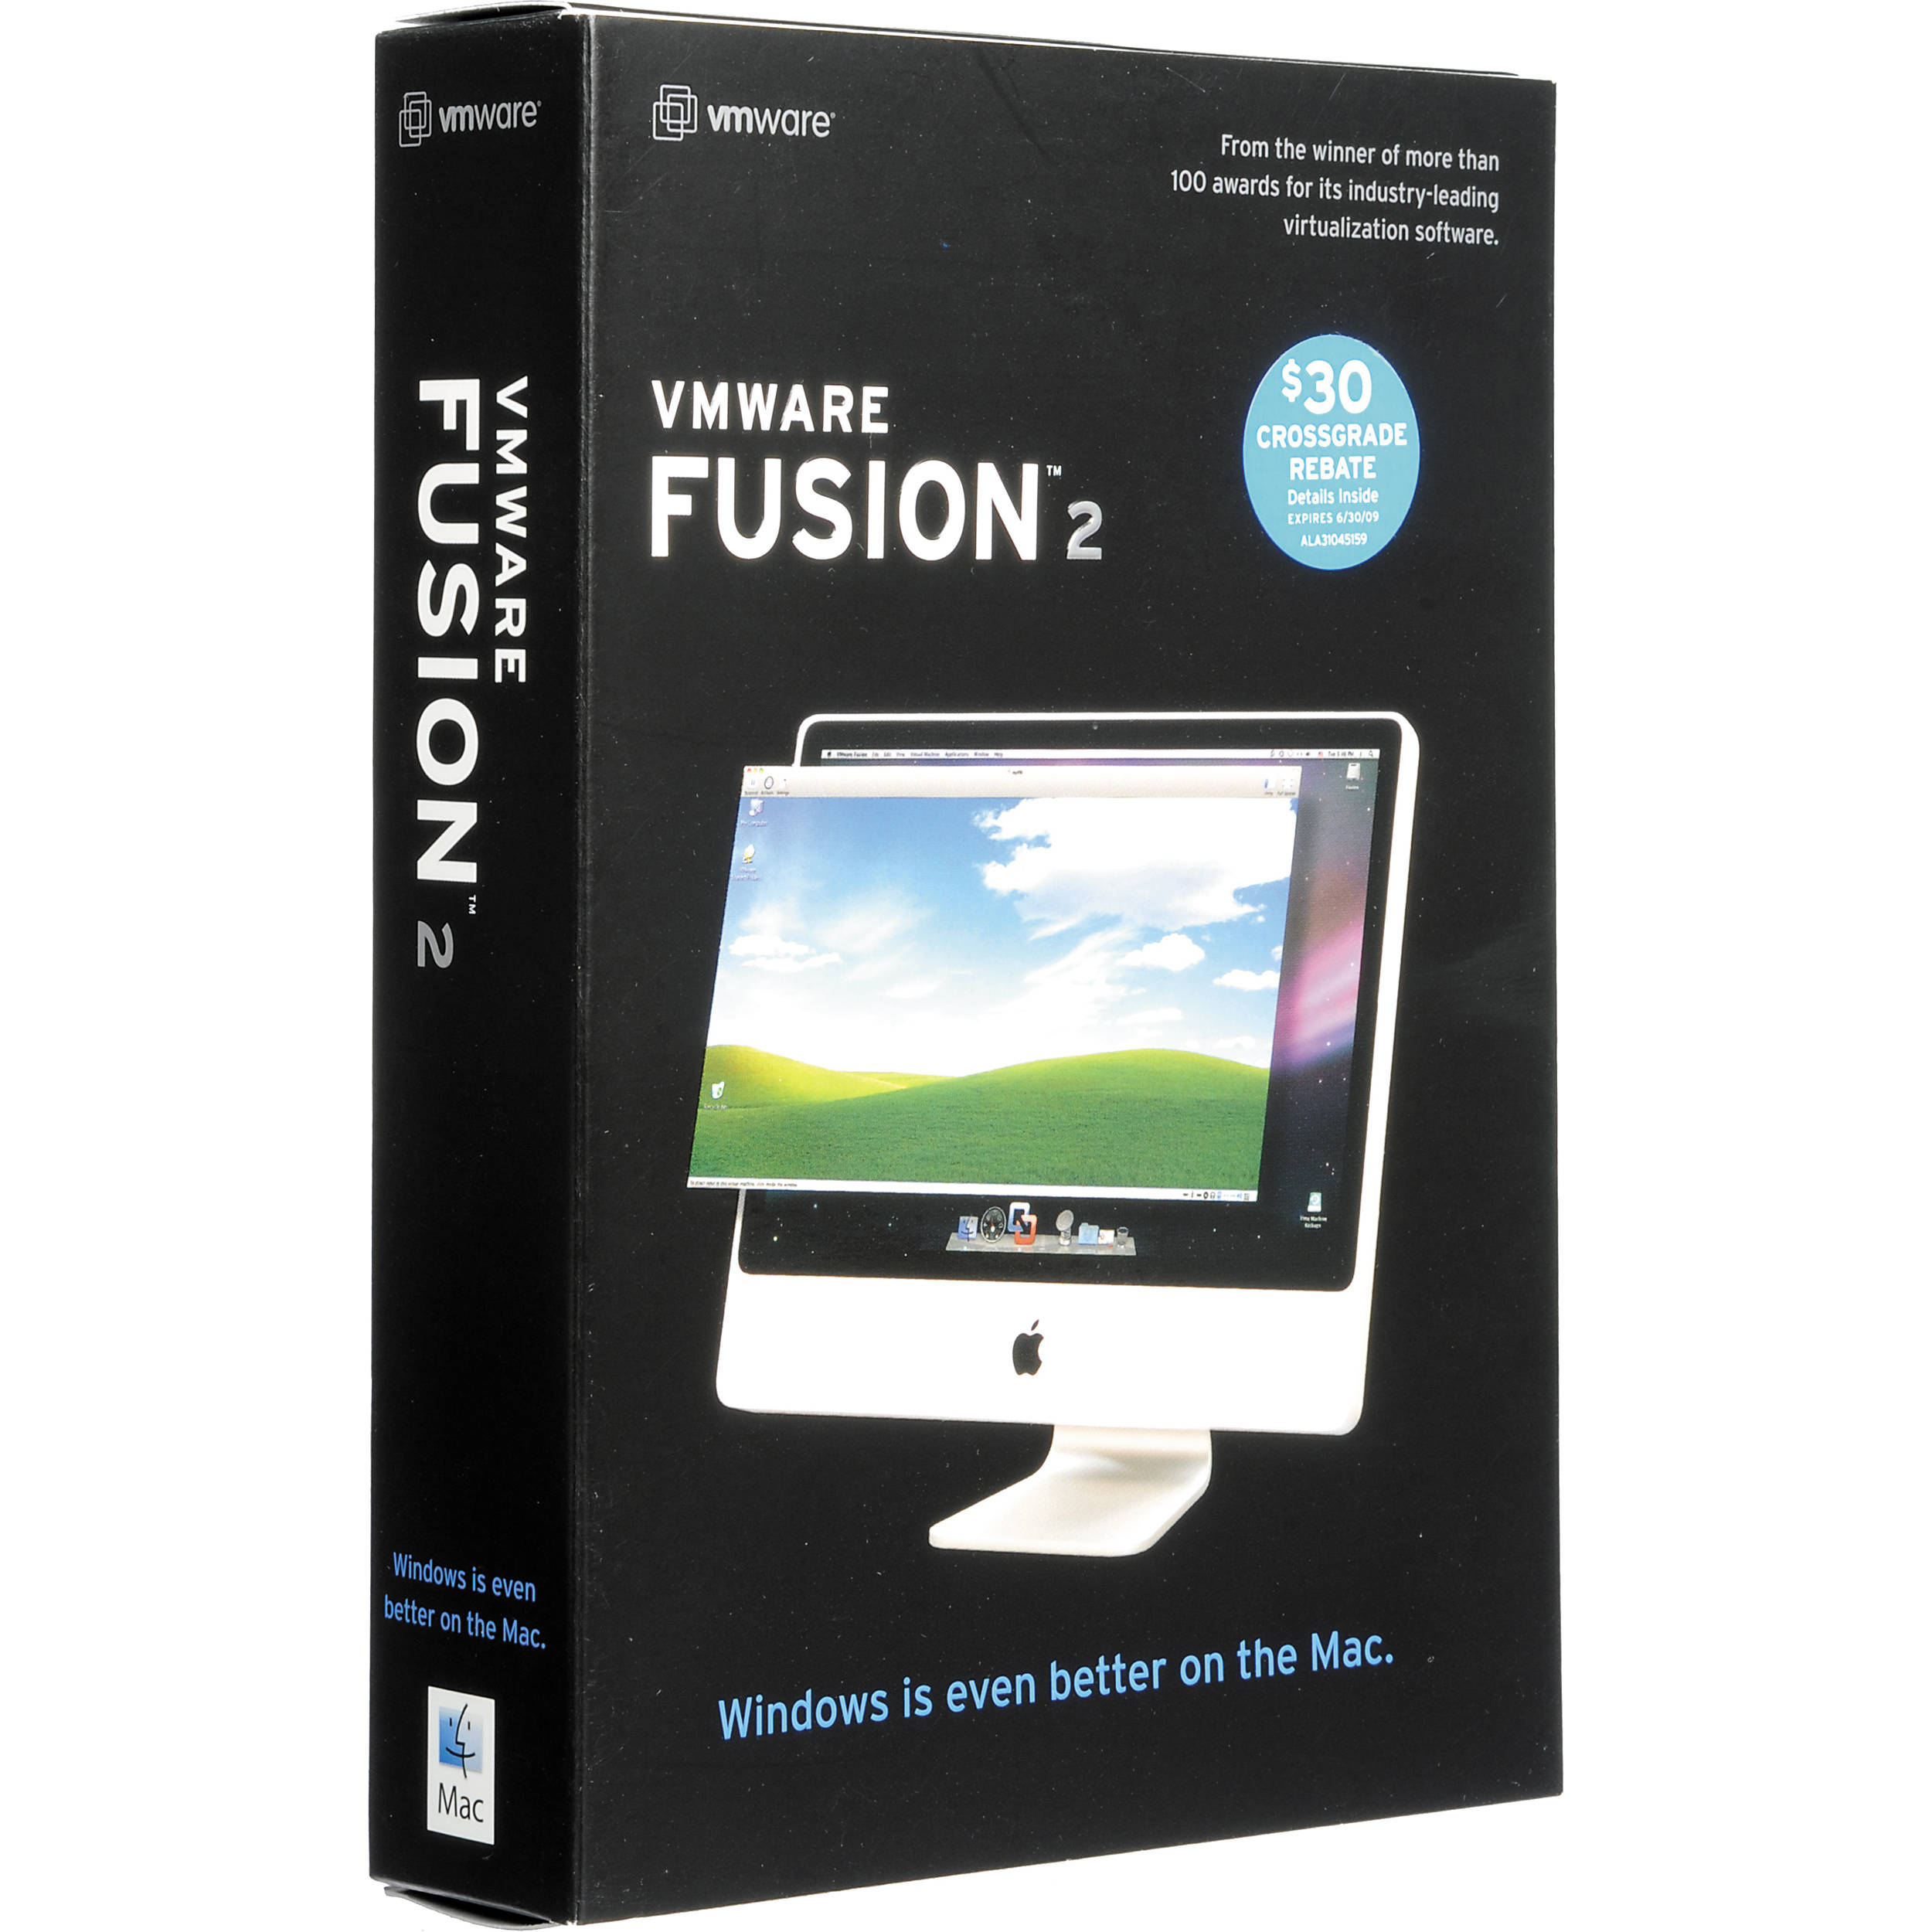 Sony picture package for mac os x lion